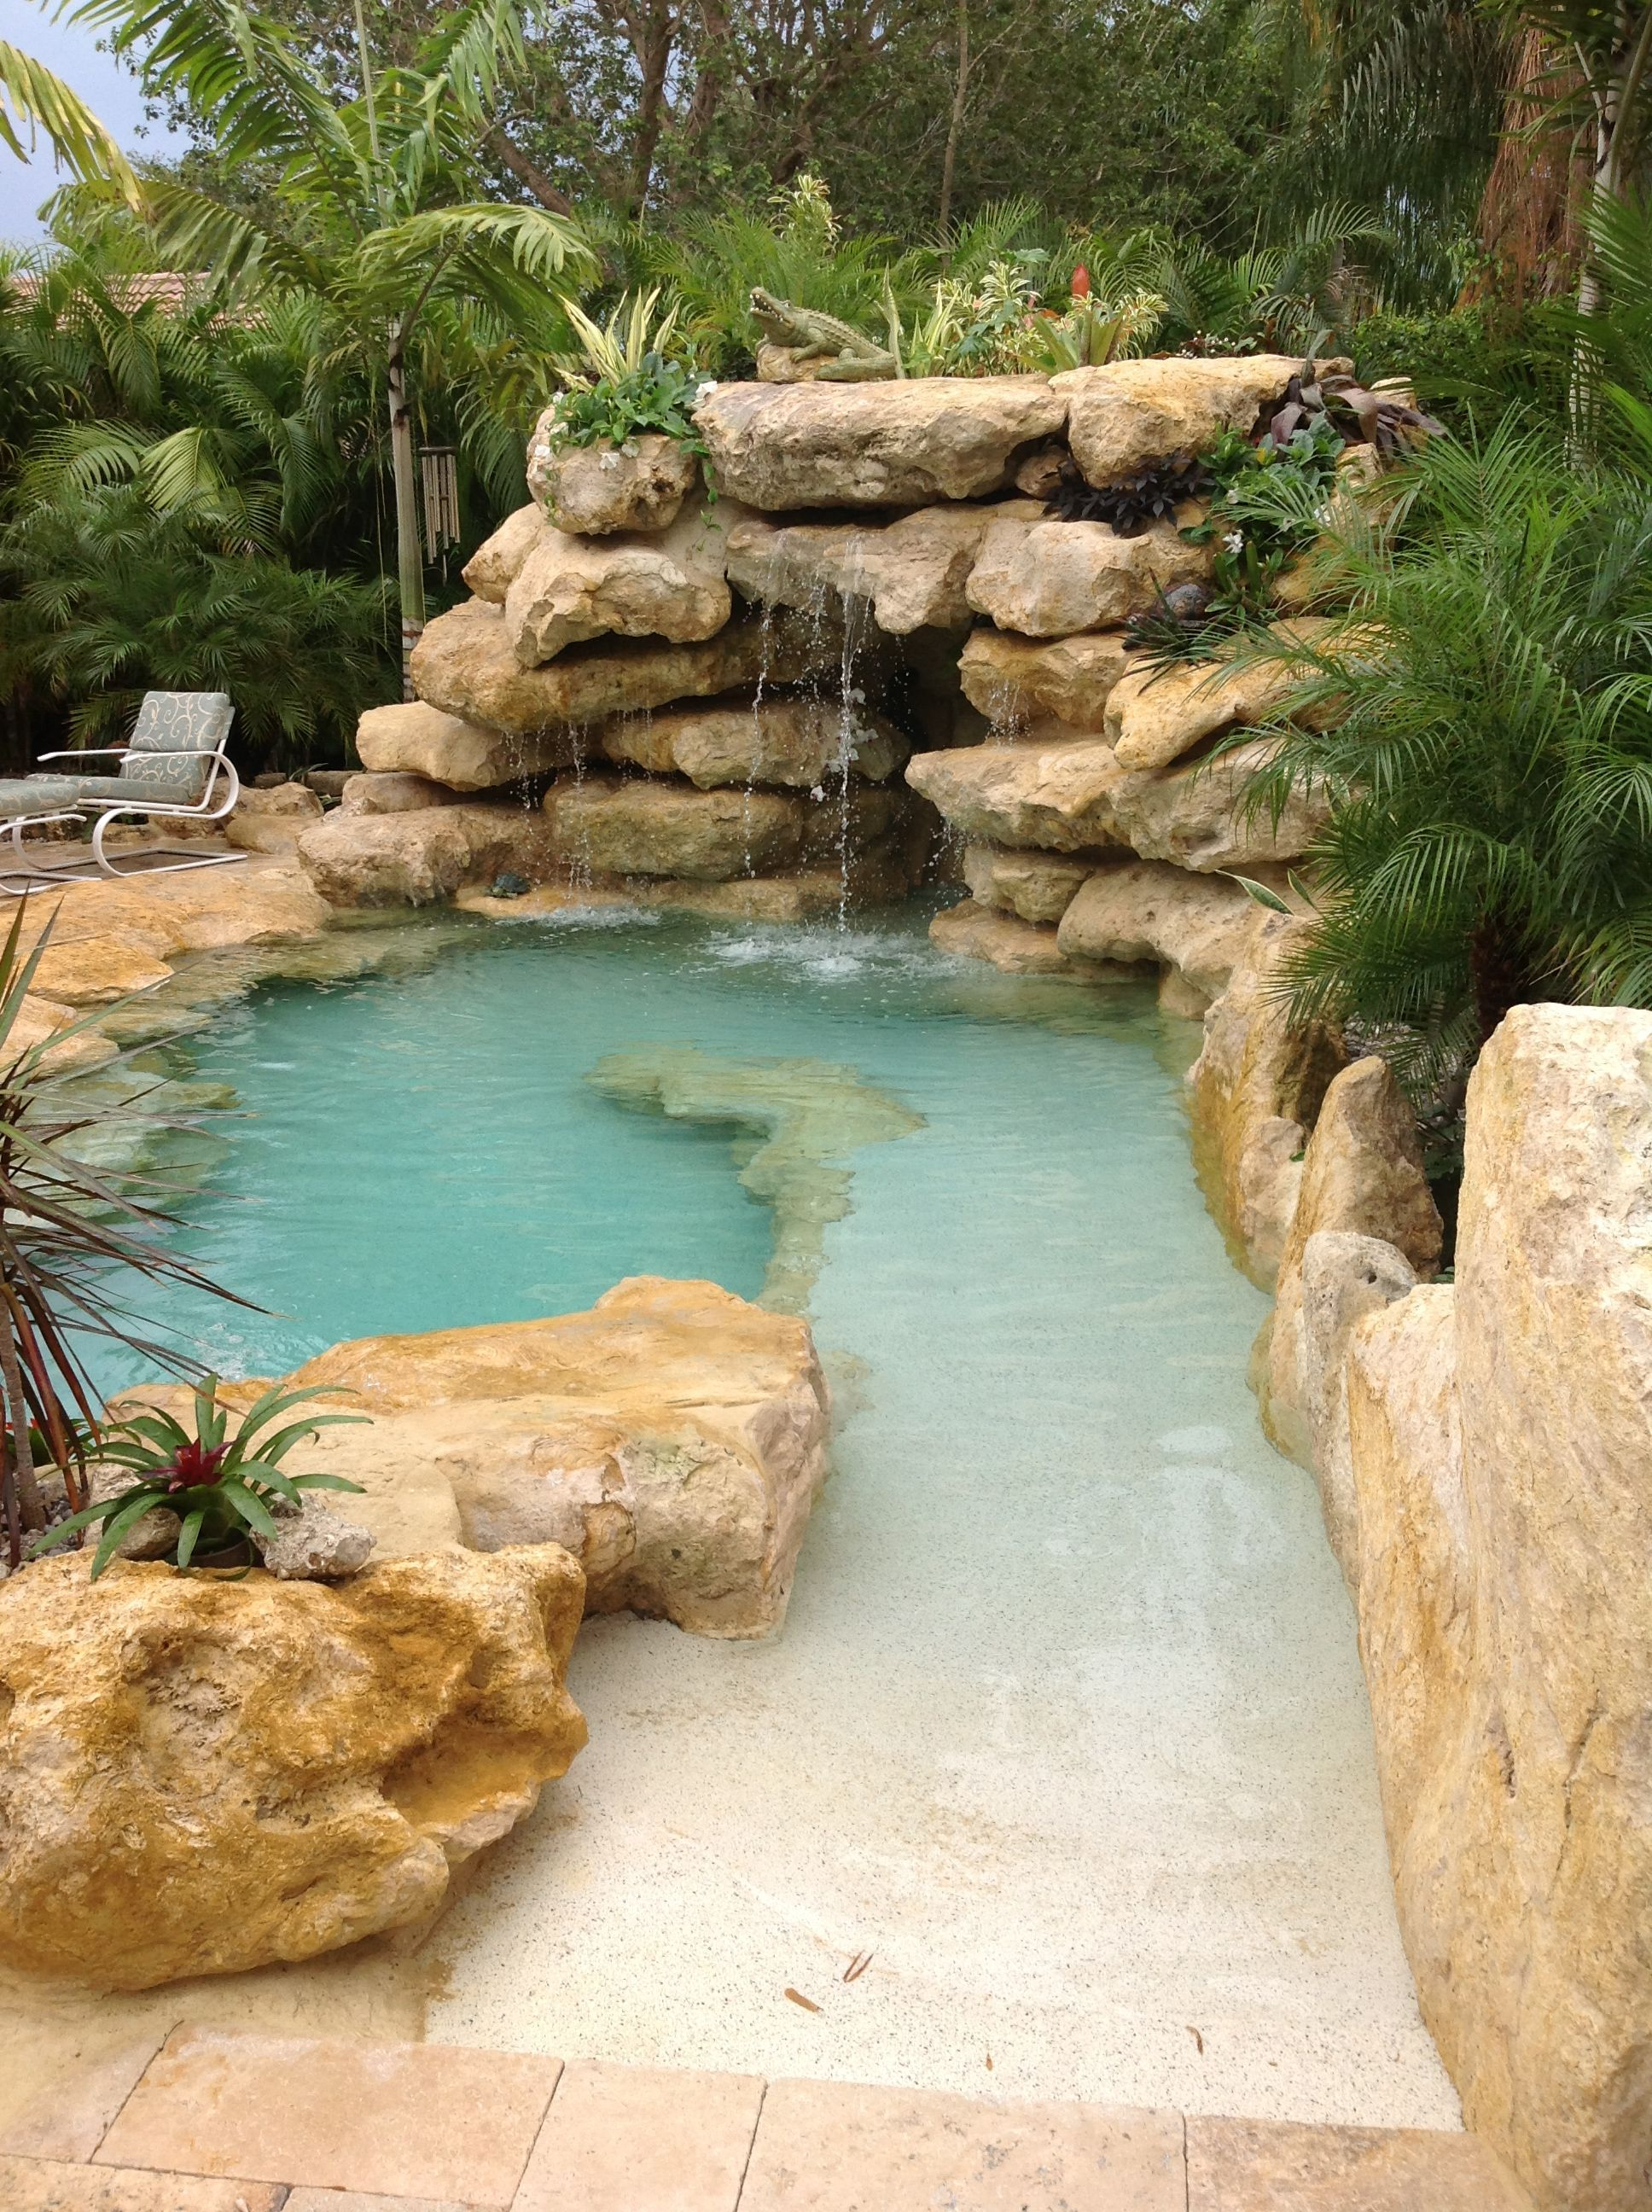 Sand entrance to our latest all natural stone tropical style pool.